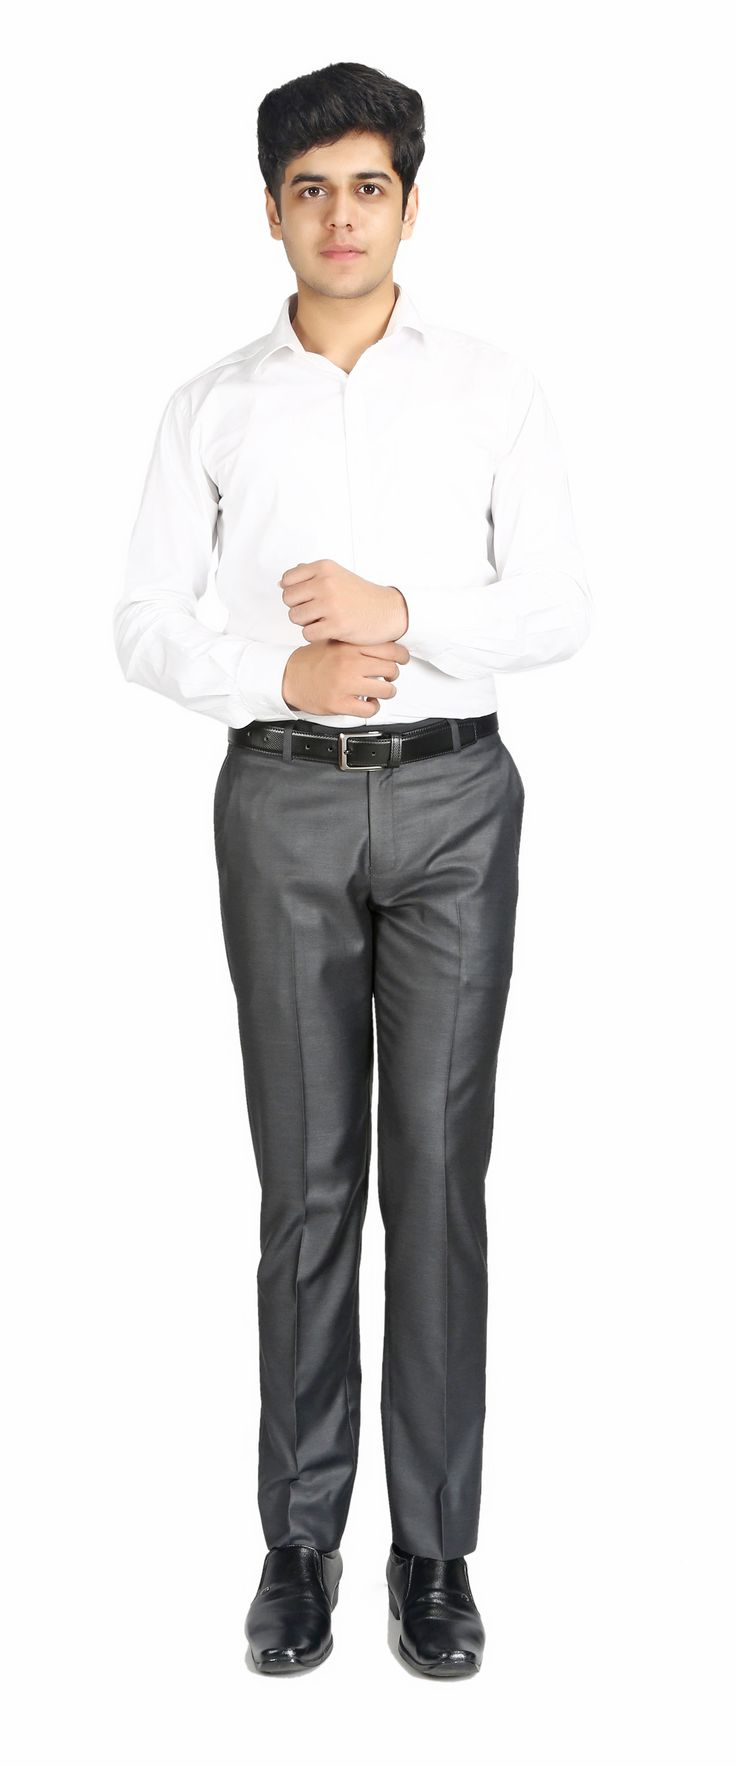 https://www.olx.in/item/diwali-offer-trouser-ID180tDb.html Brand Name= NUMERICS Size= 30-38 Shade= Grey Fit= Slim Fit Fabric= POLYSTER VISCOSE Price= 1110/- Discount= 40% Now Price= 666/-